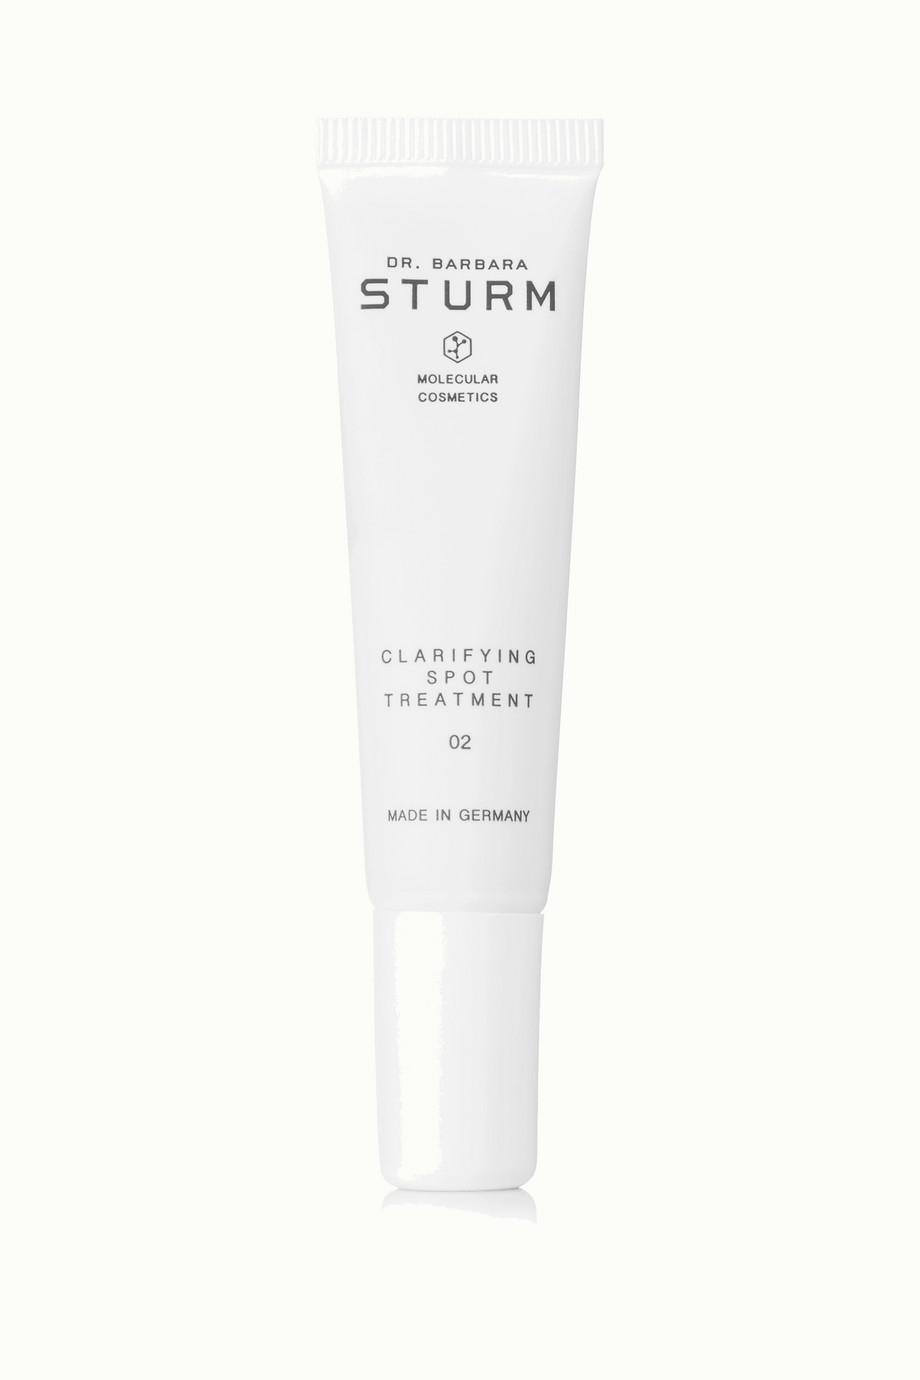 Dr. Barbara Sturm Clarifying Spot Treatment – 02, 15 ml – Anti-Pickel-Creme